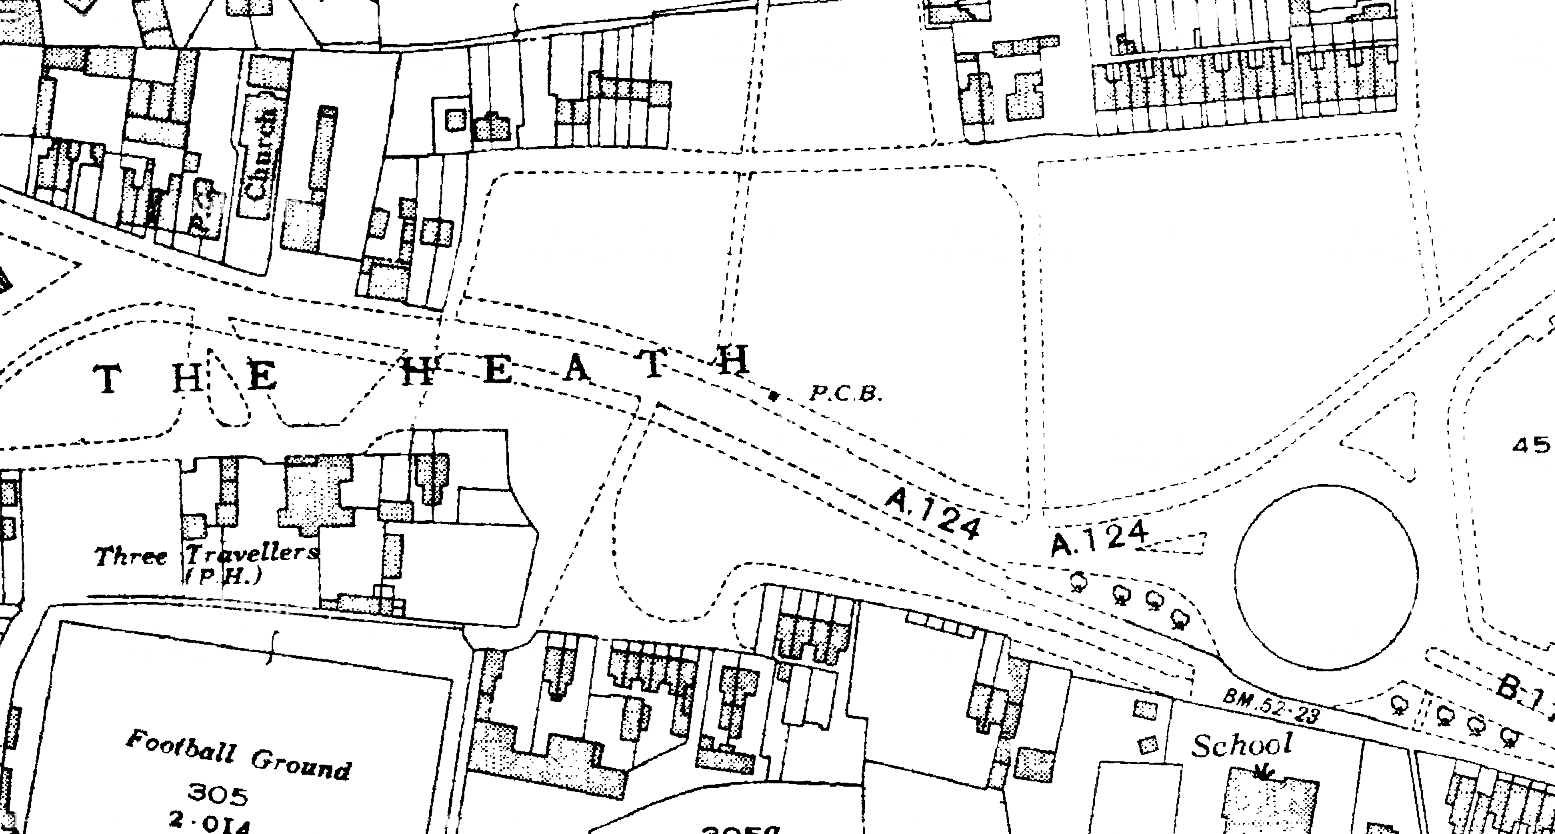 K41--Becontree Heath Box--1938-1939 OS Map Extract 1-2500.png